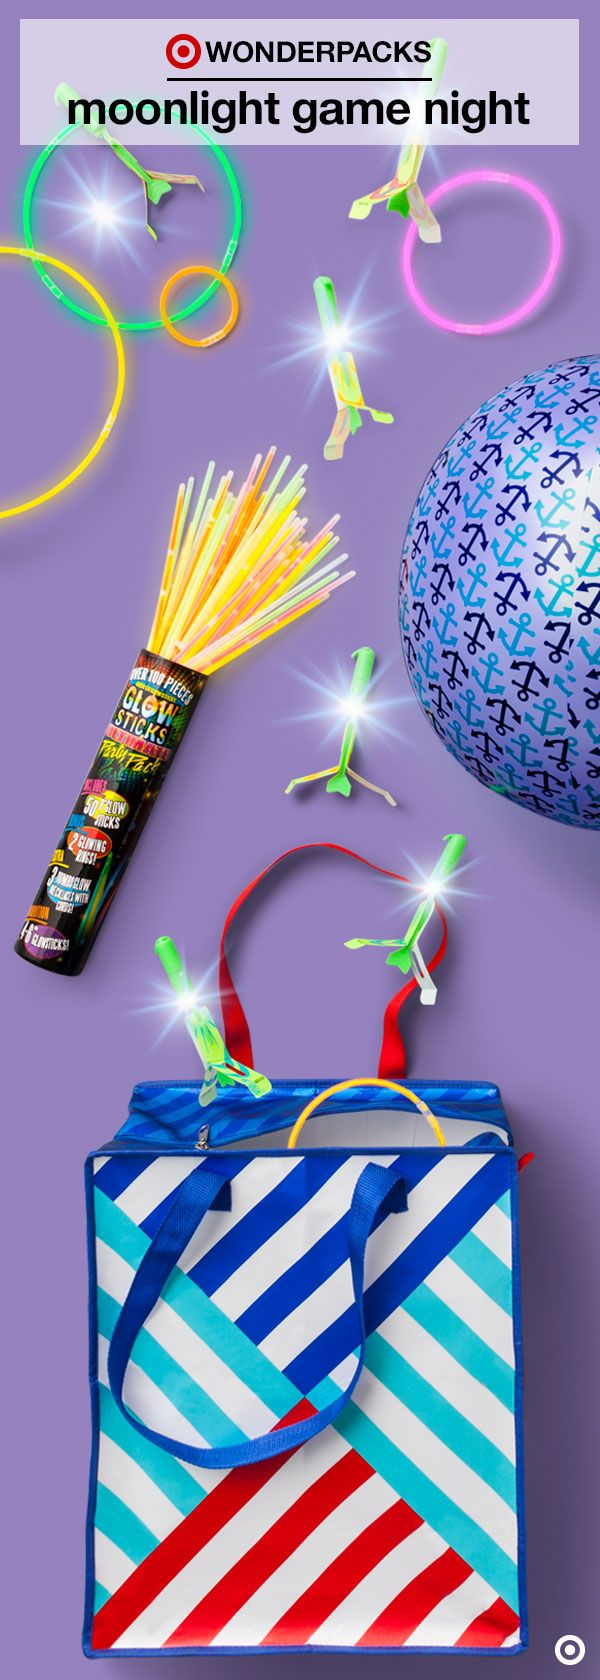 Ready, set, glow! Put your own twilight twist on a bunch of classic summer games with the Moonlight Game Night Wonderpack. Inside youÍll find everything you need for a bright night of fun, including an activity book full of instructions, inspiration and ideas.  Click to find out more about Moonlight Game Night and discover new Wonderpacks for endless summer fun. Get them before they're gone!